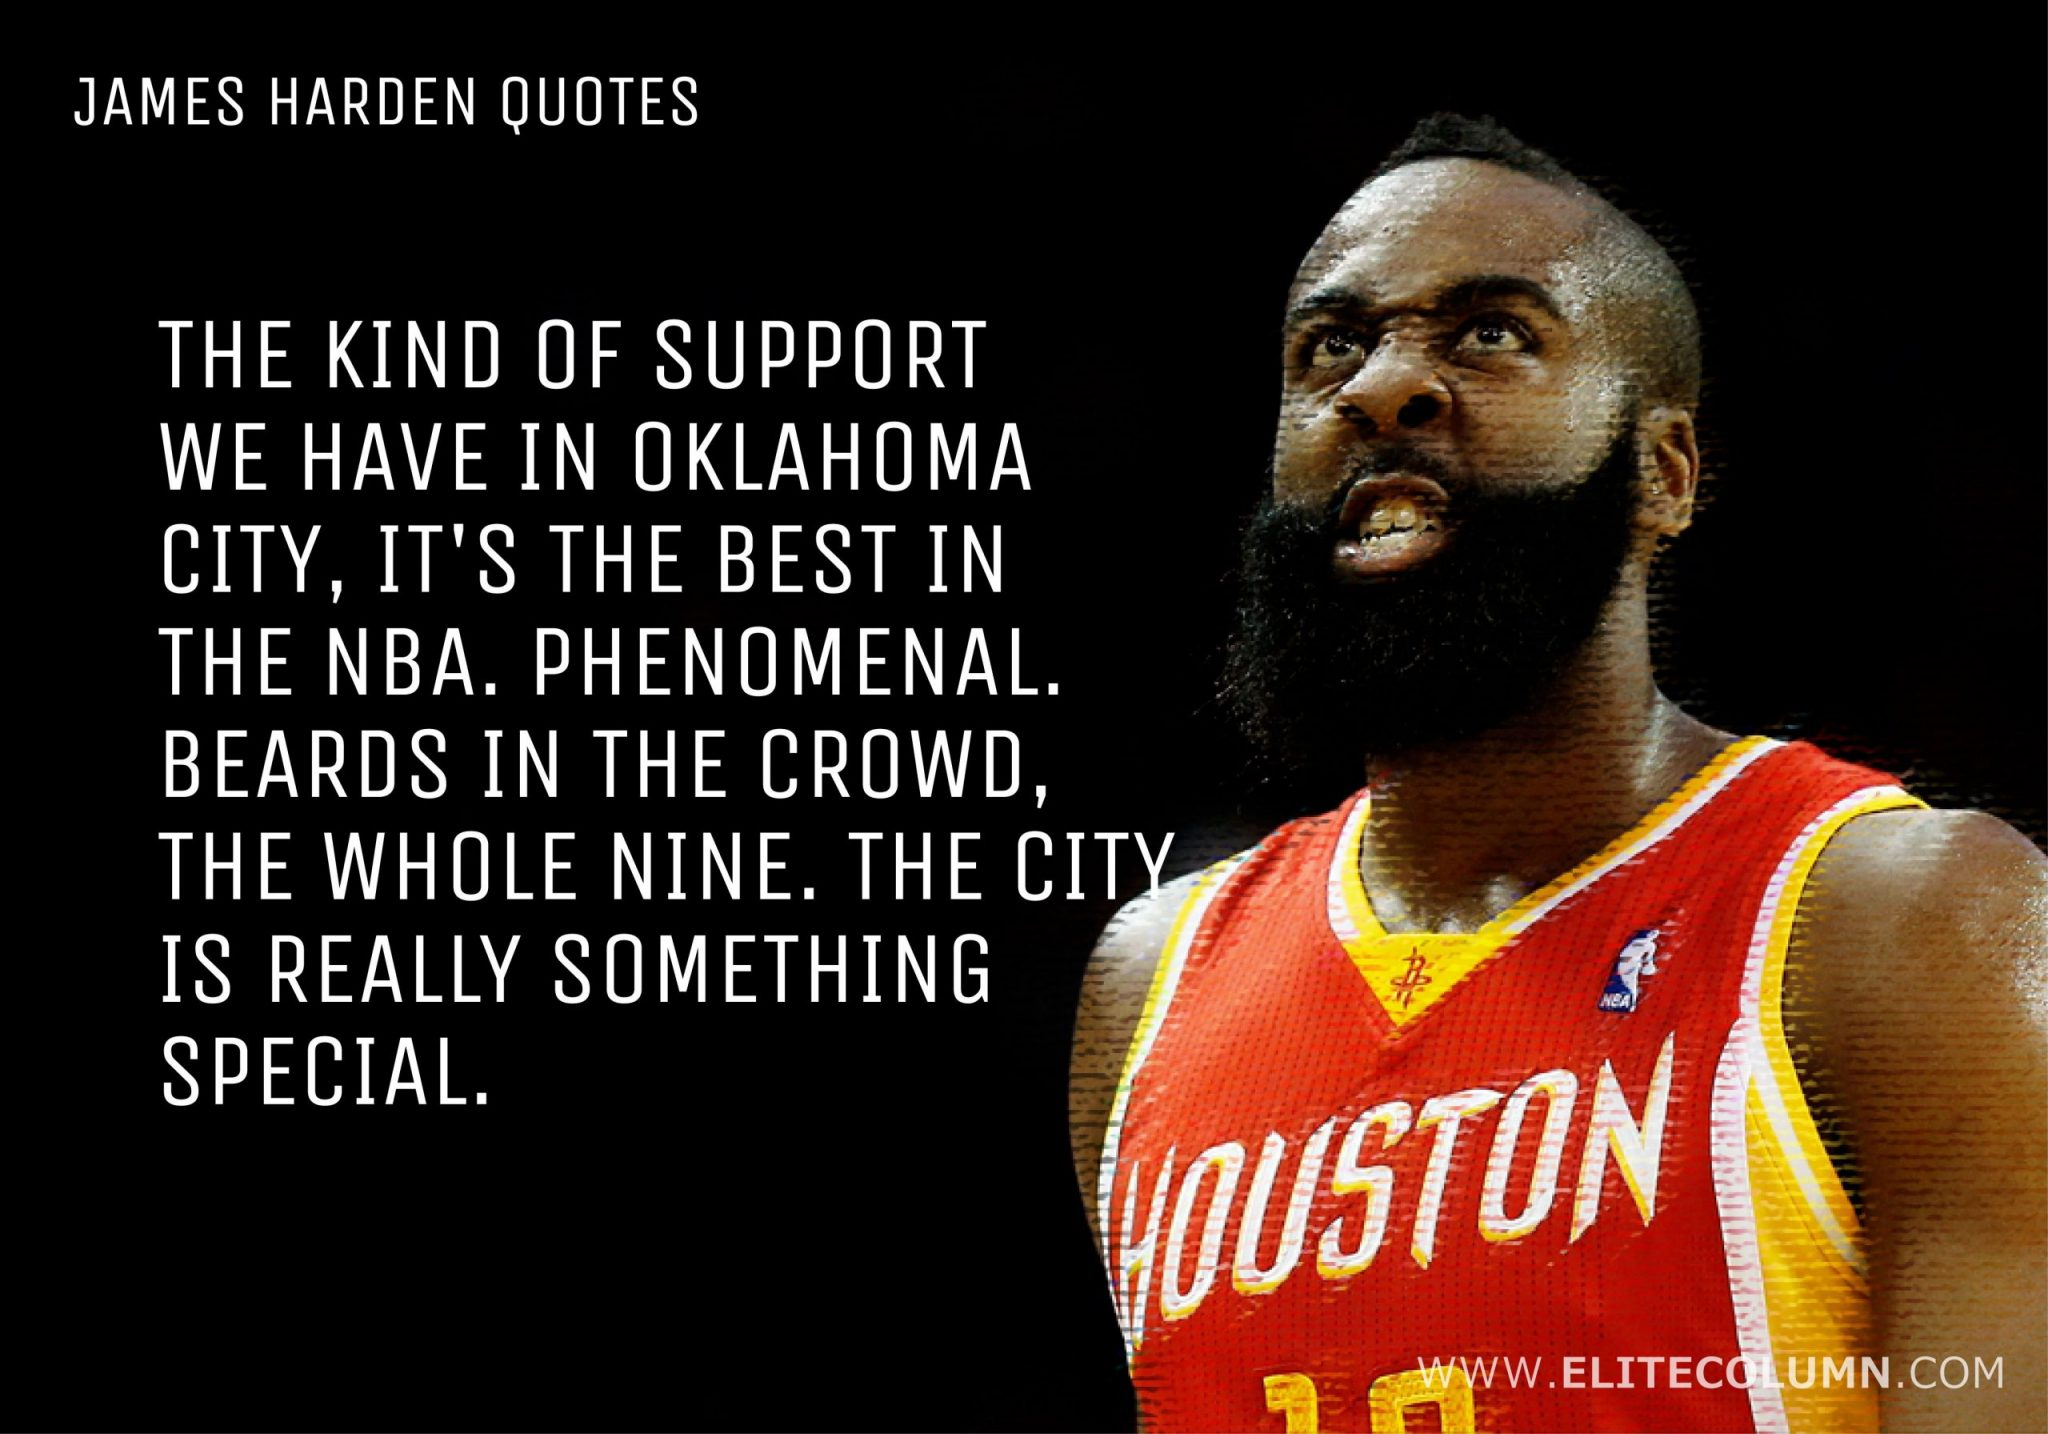 James Harden Quotes (4)